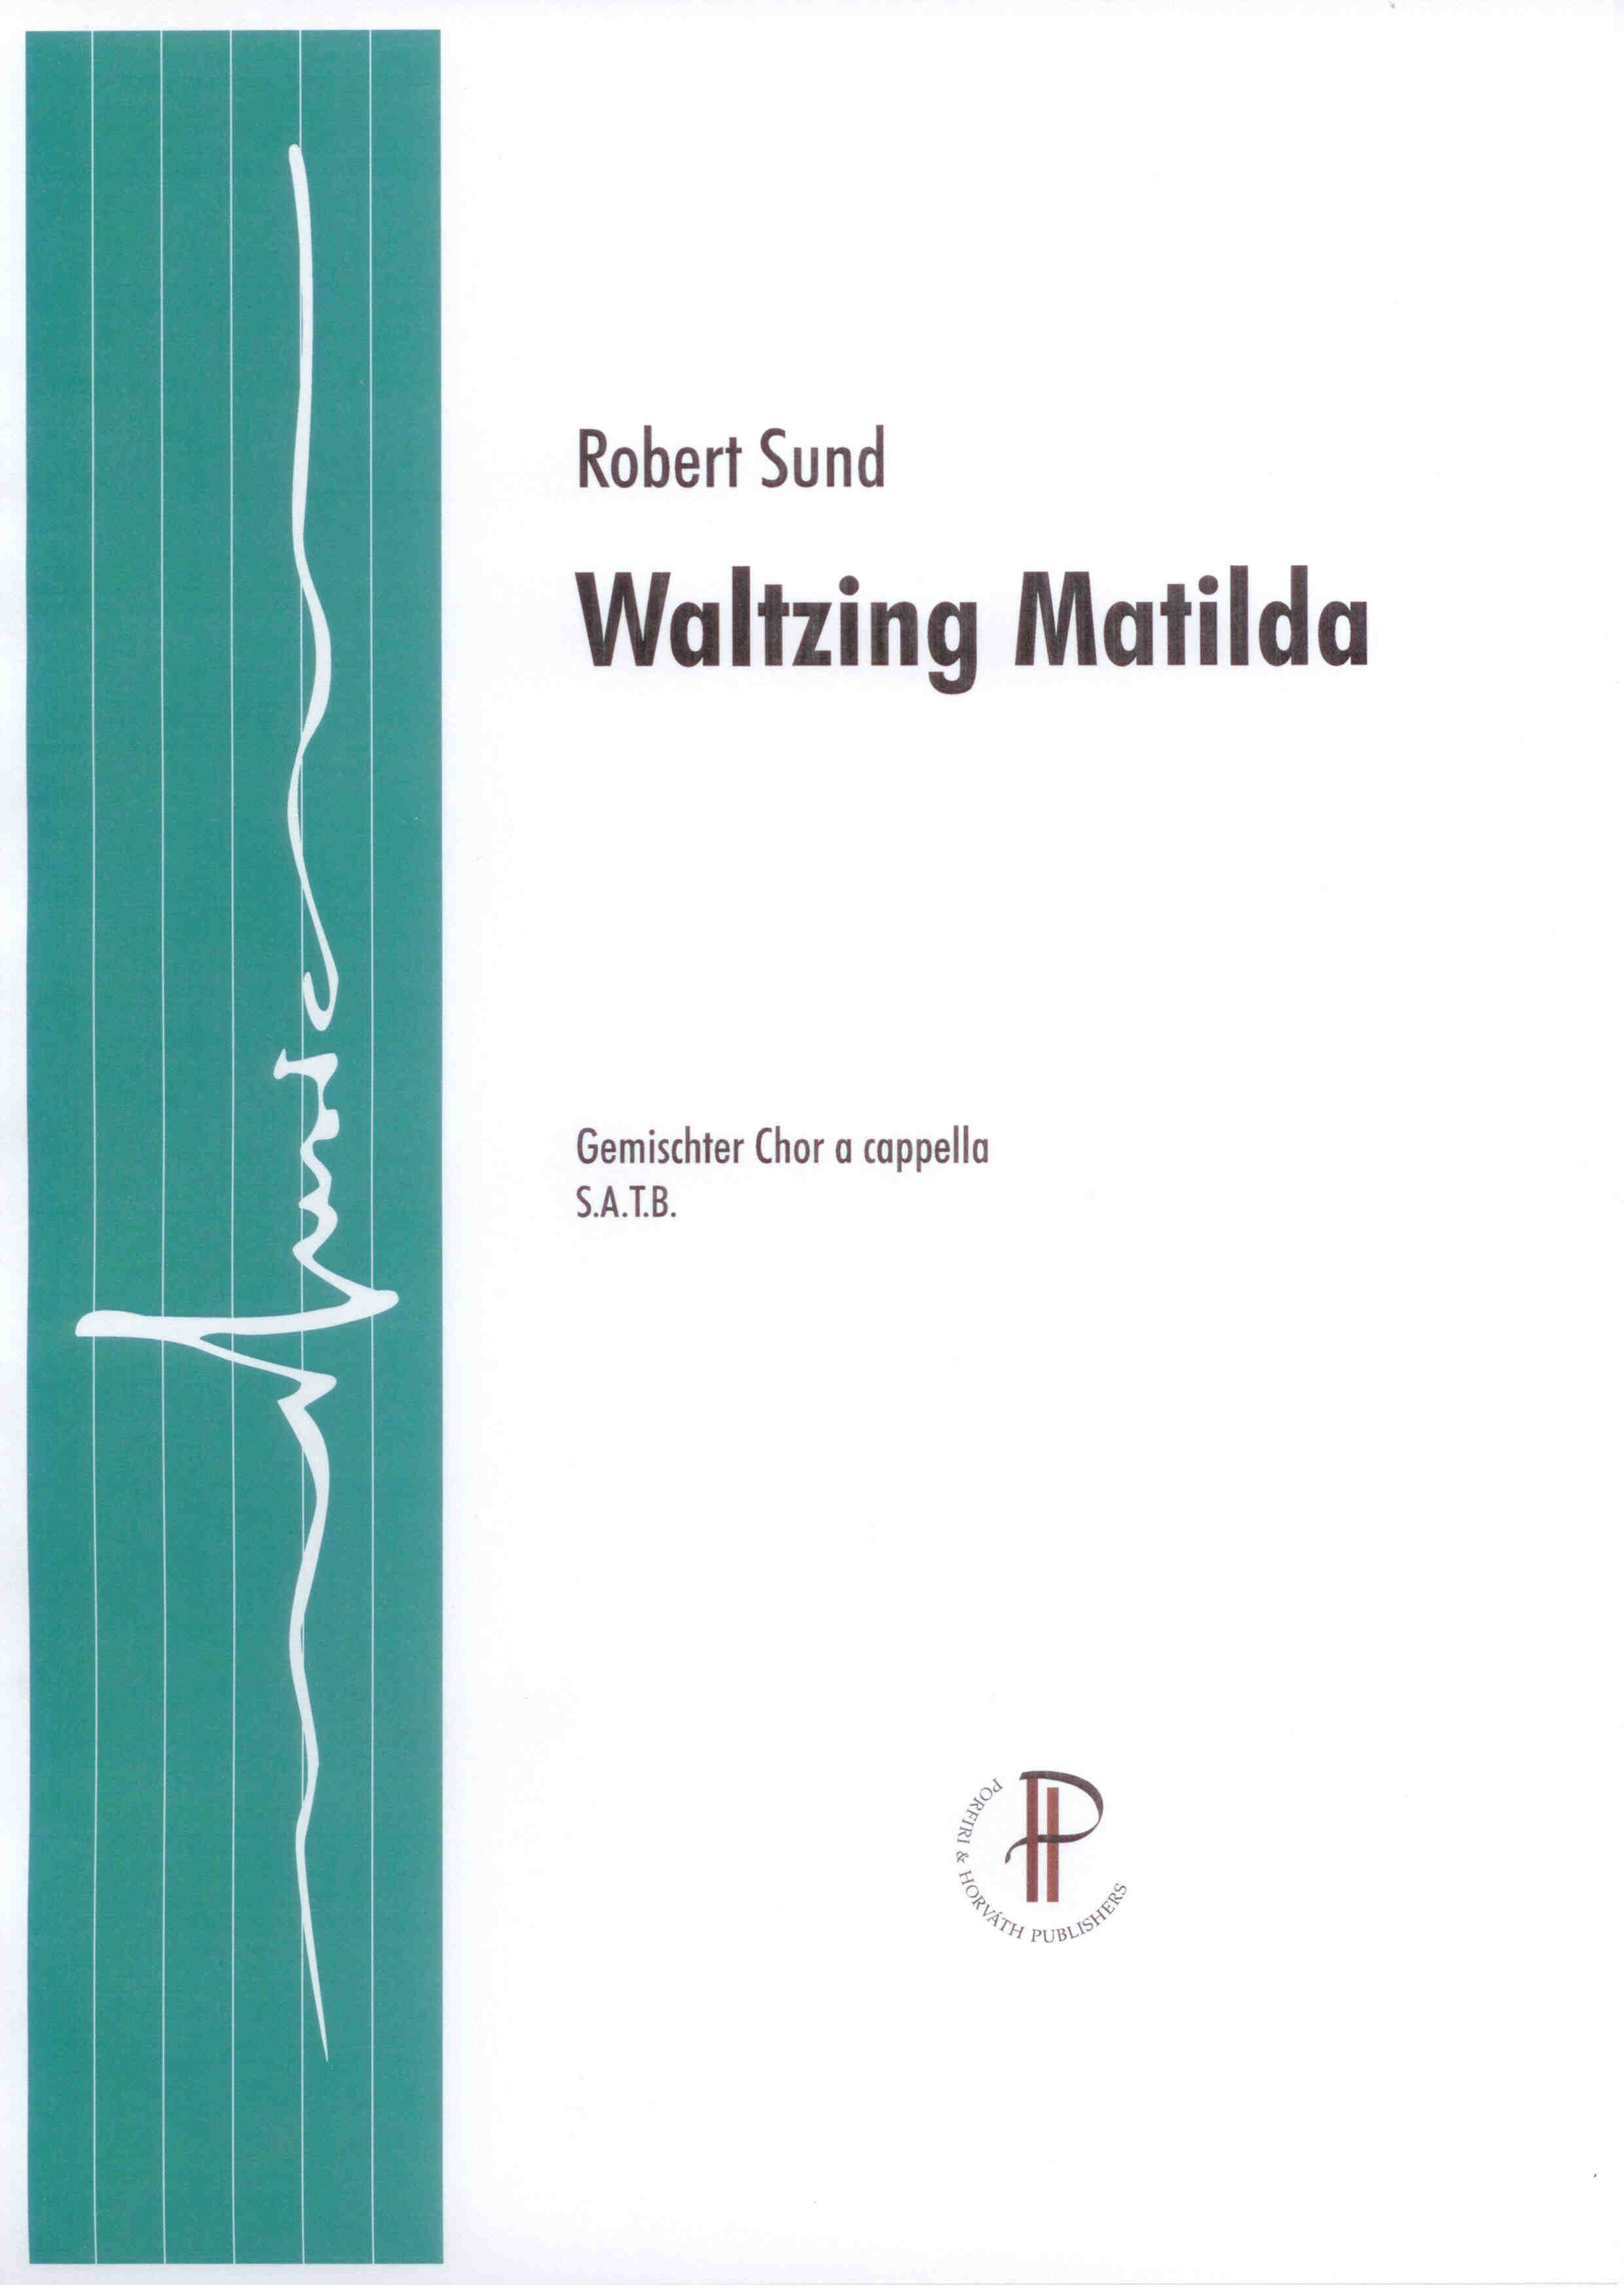 Waltzing Matilda - Show sample score